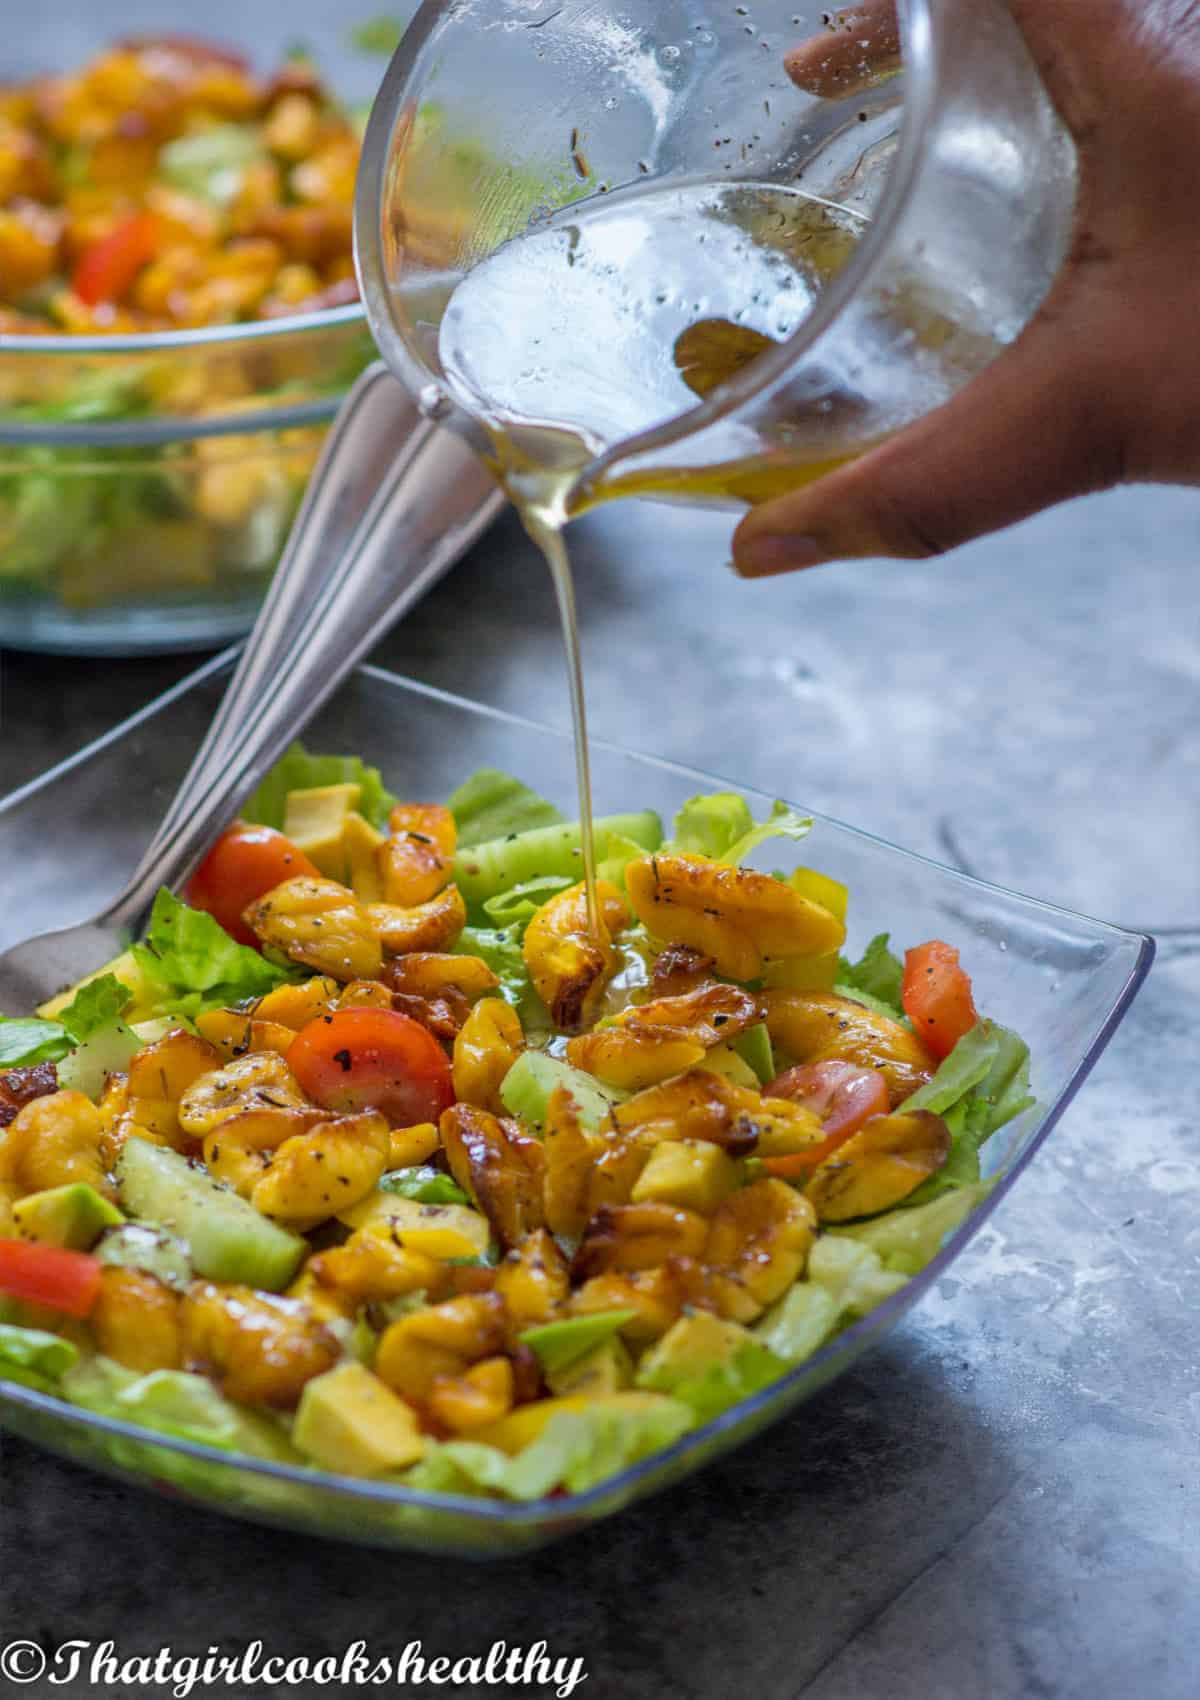 pouring dressing onto the salad